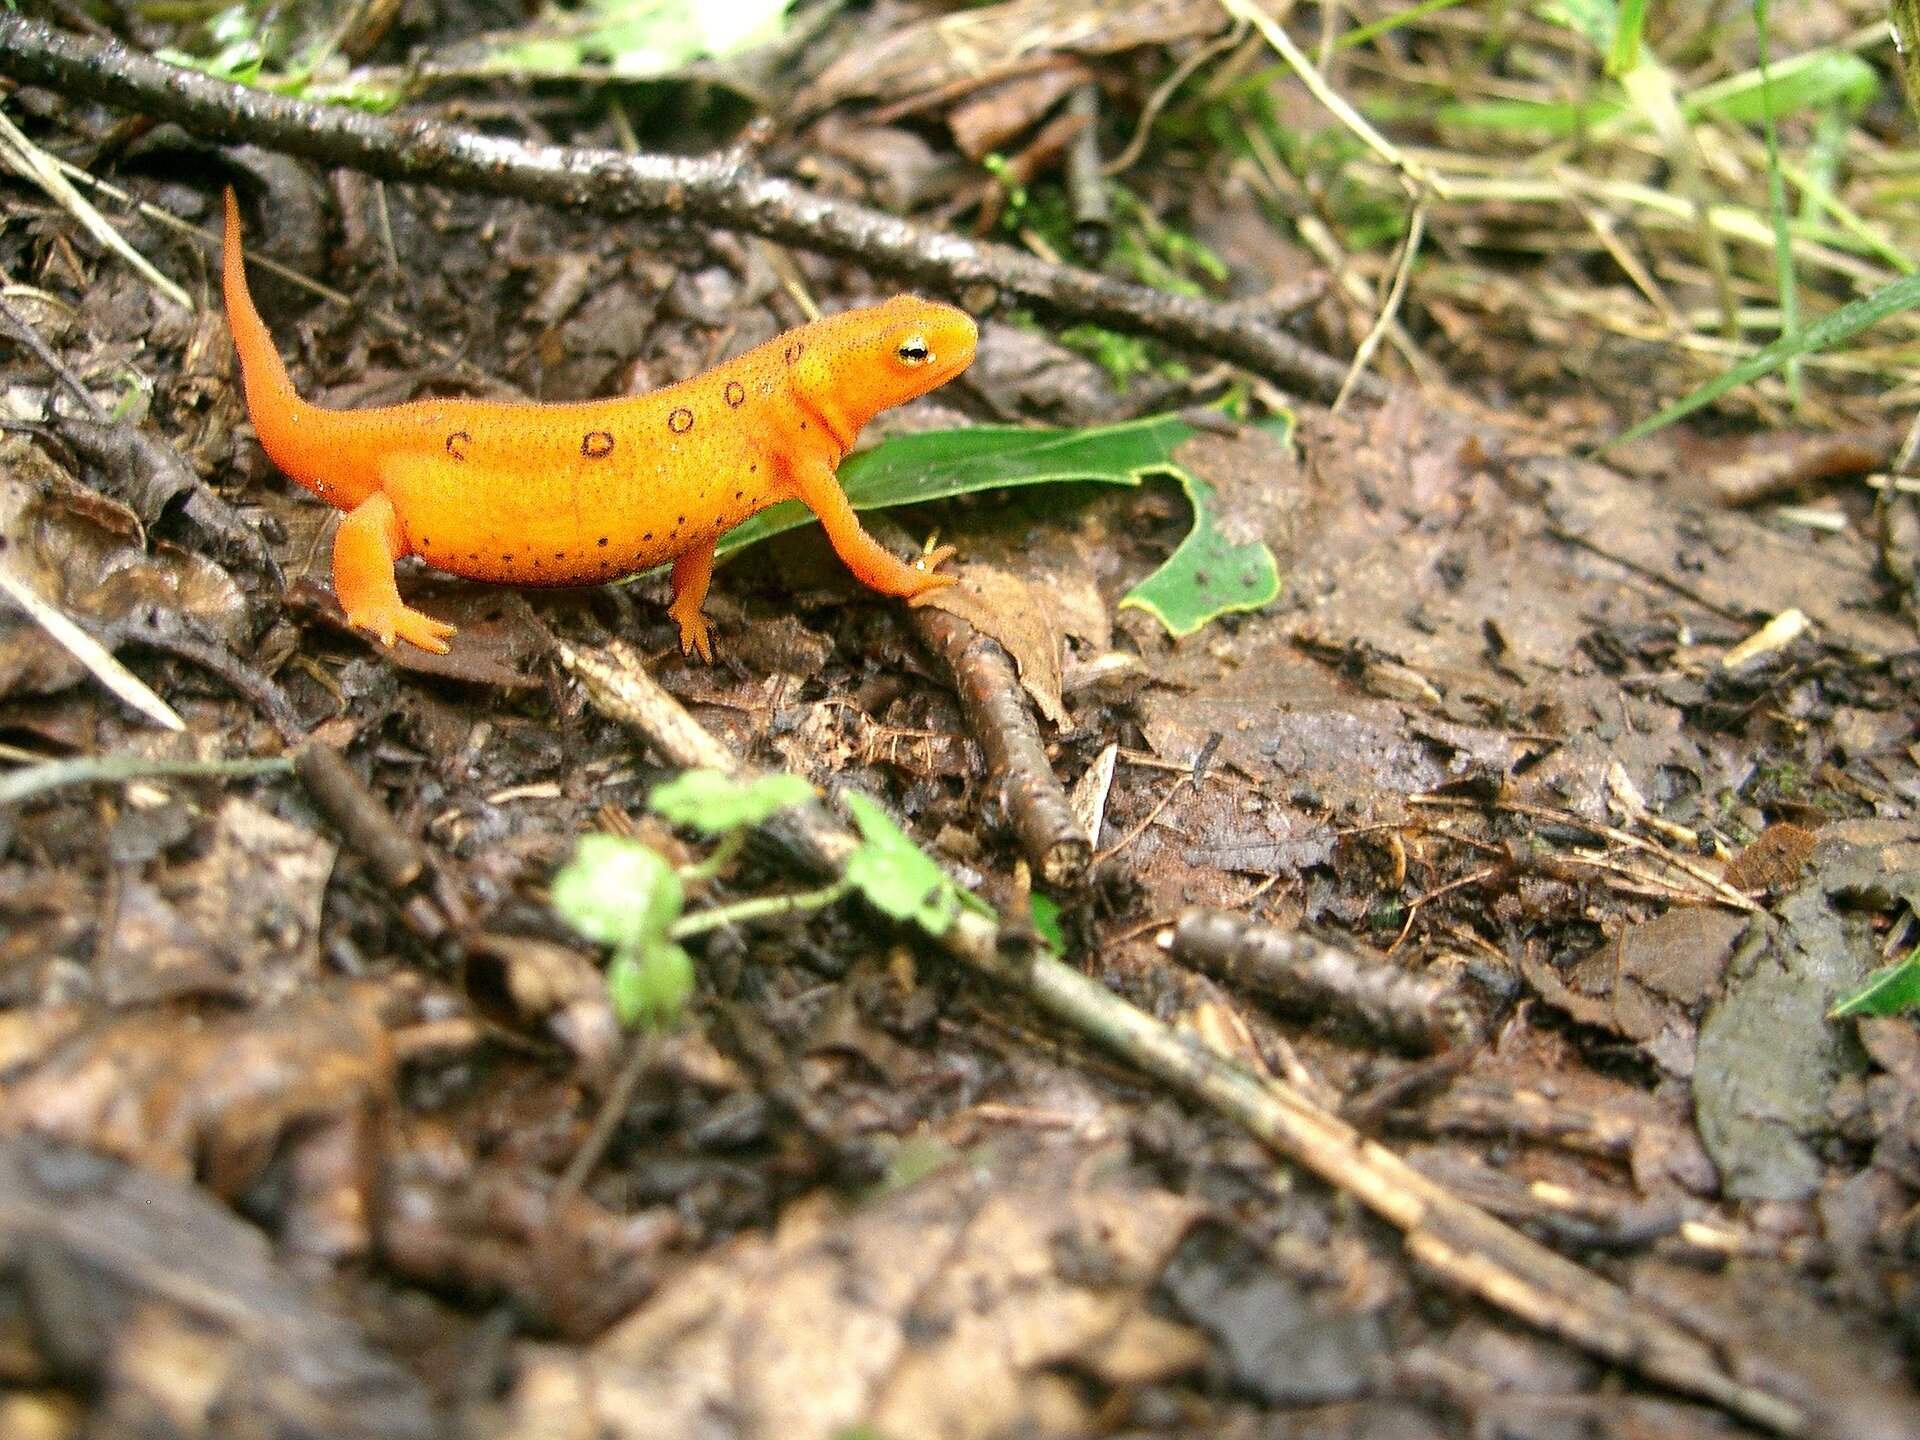 Temperature affects susceptibility of newts to skin-eating fungus